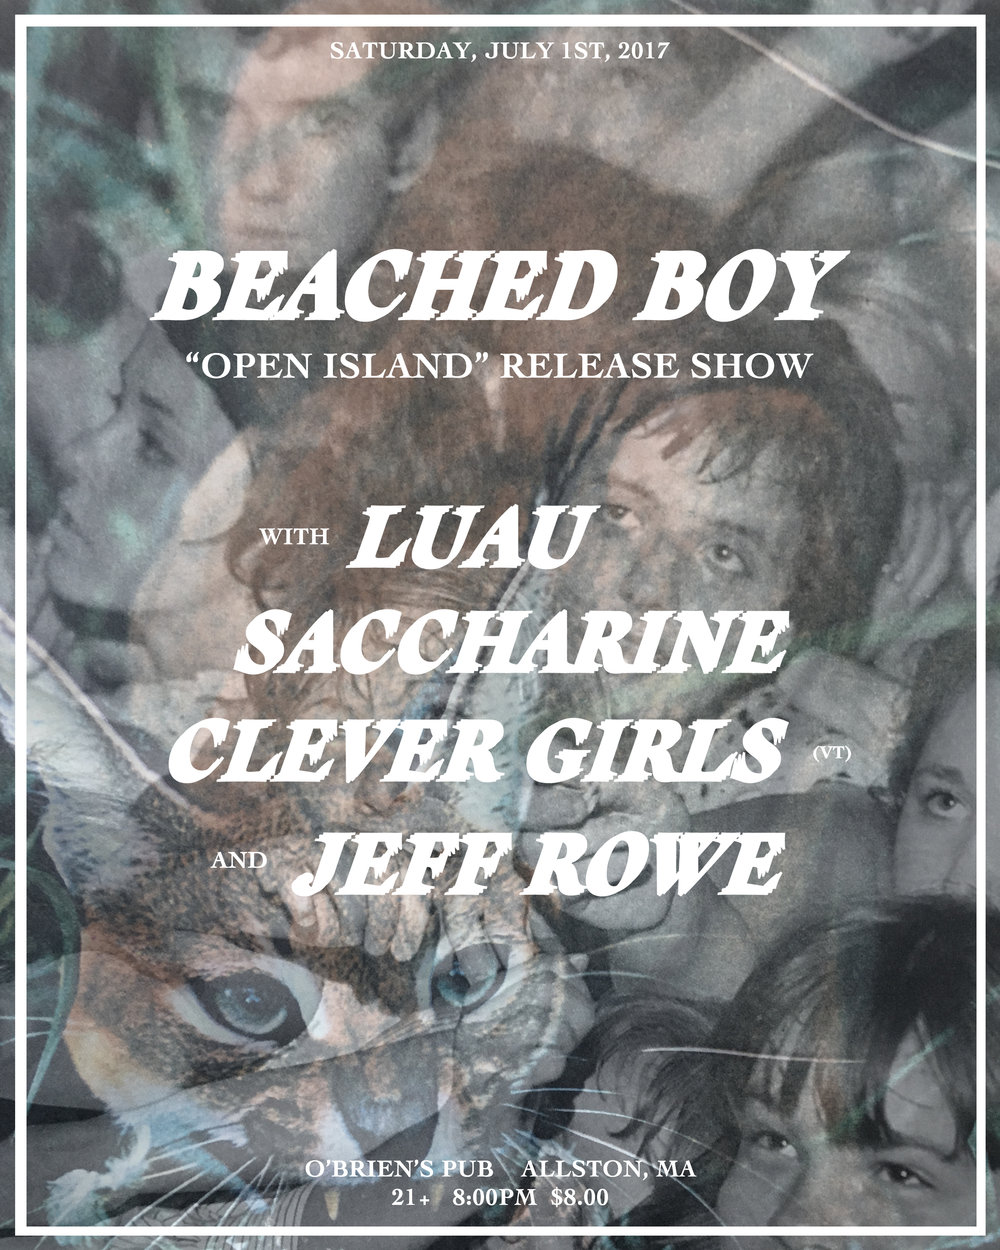 Flyer-BeachedBoy71Release-Cougar copy.jpg